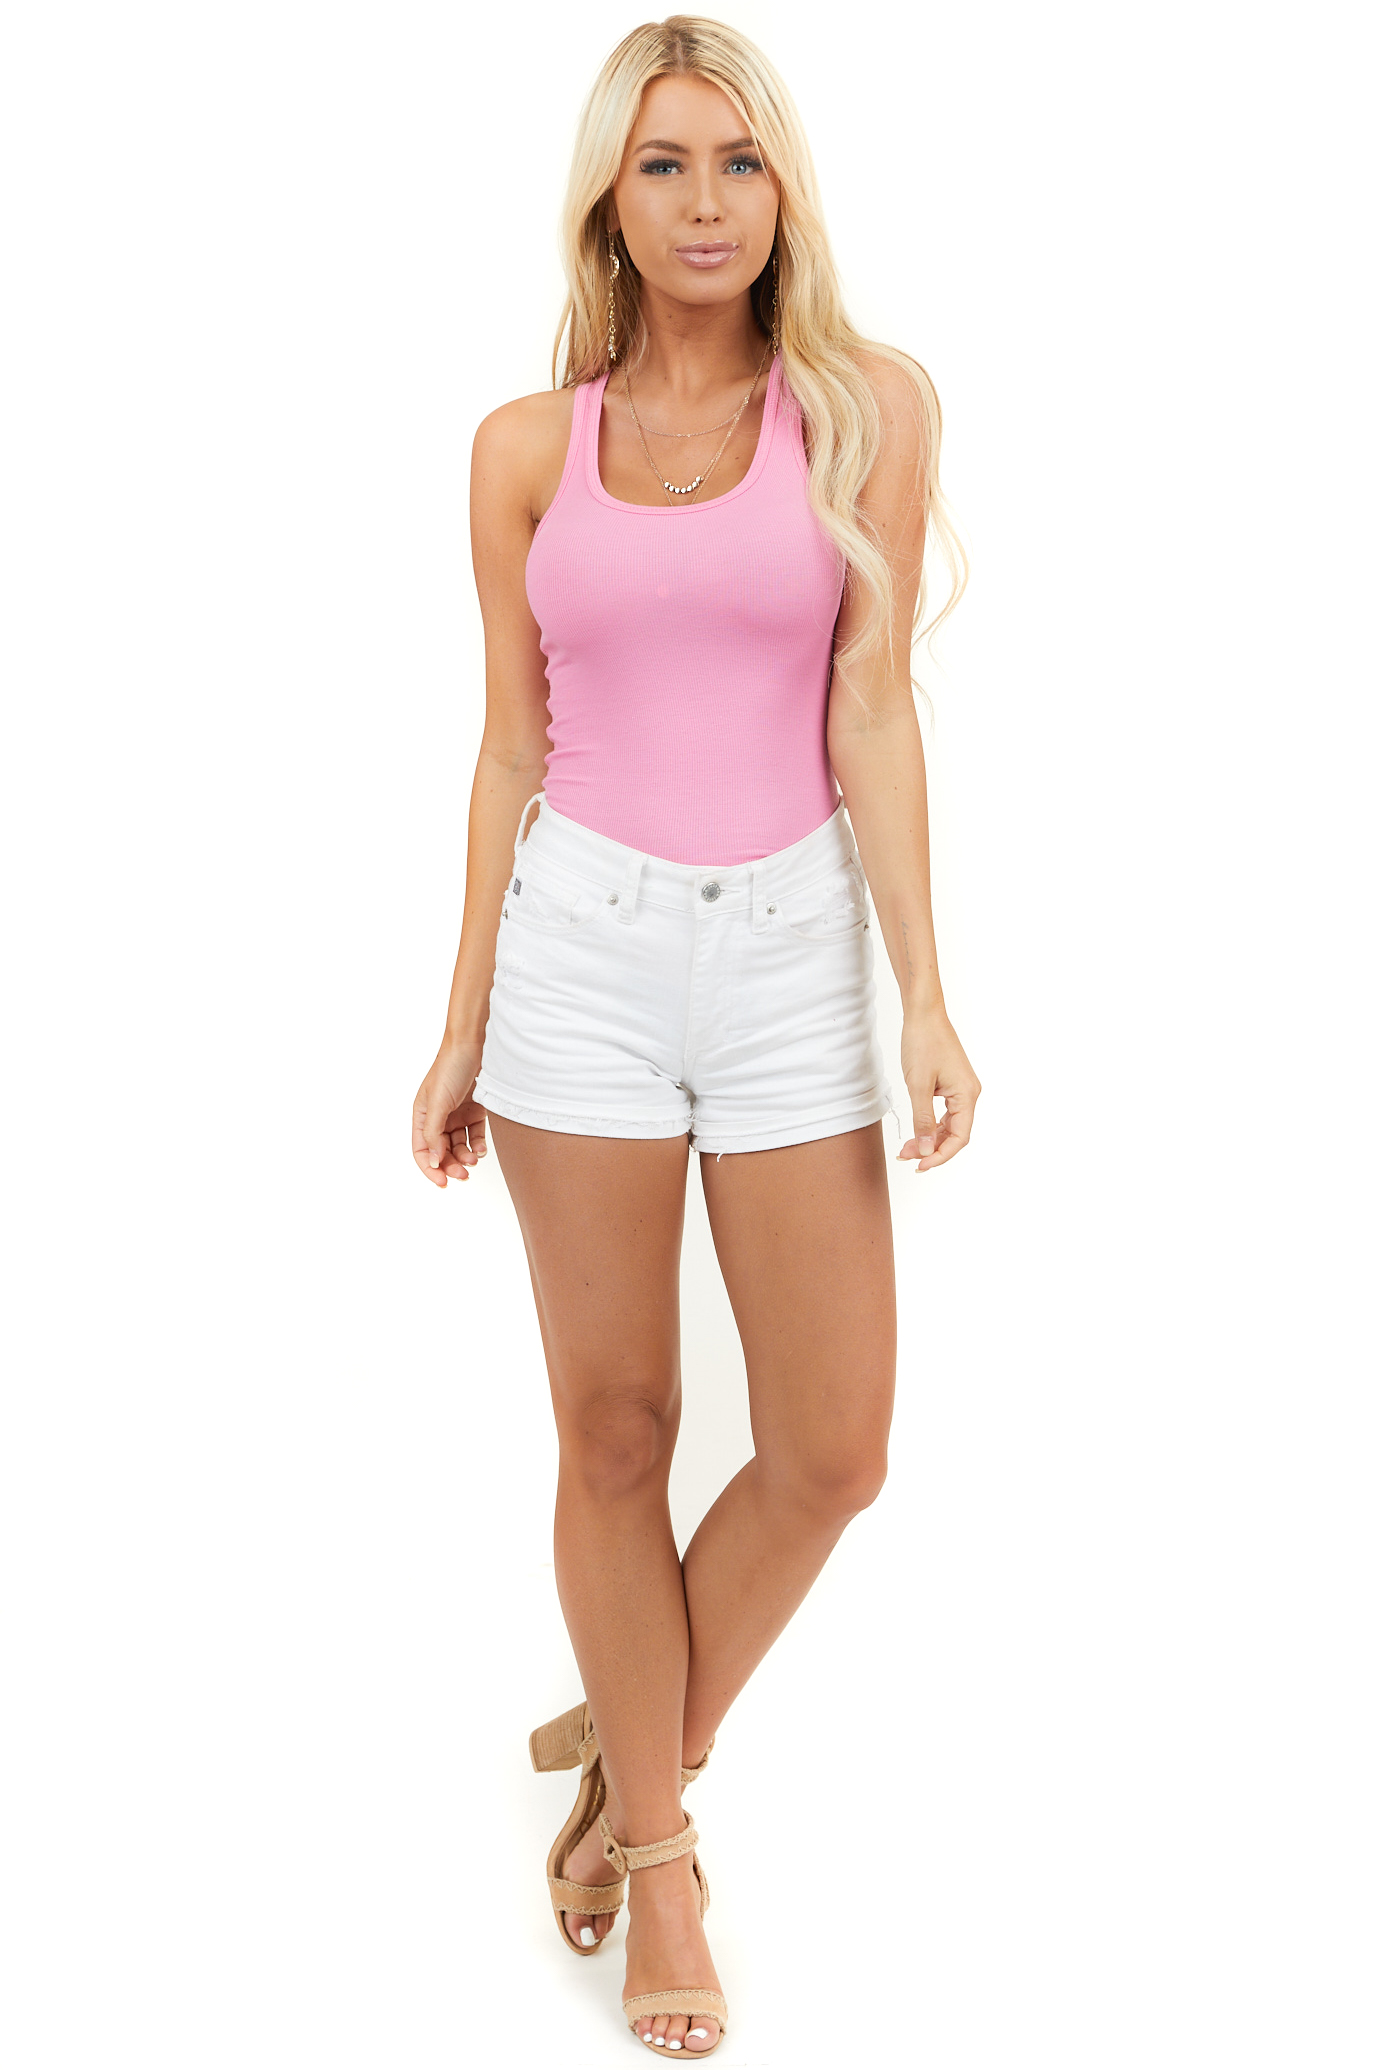 Bubblegum Pink Ribbed Knit Tank Top with Rounded Neckline